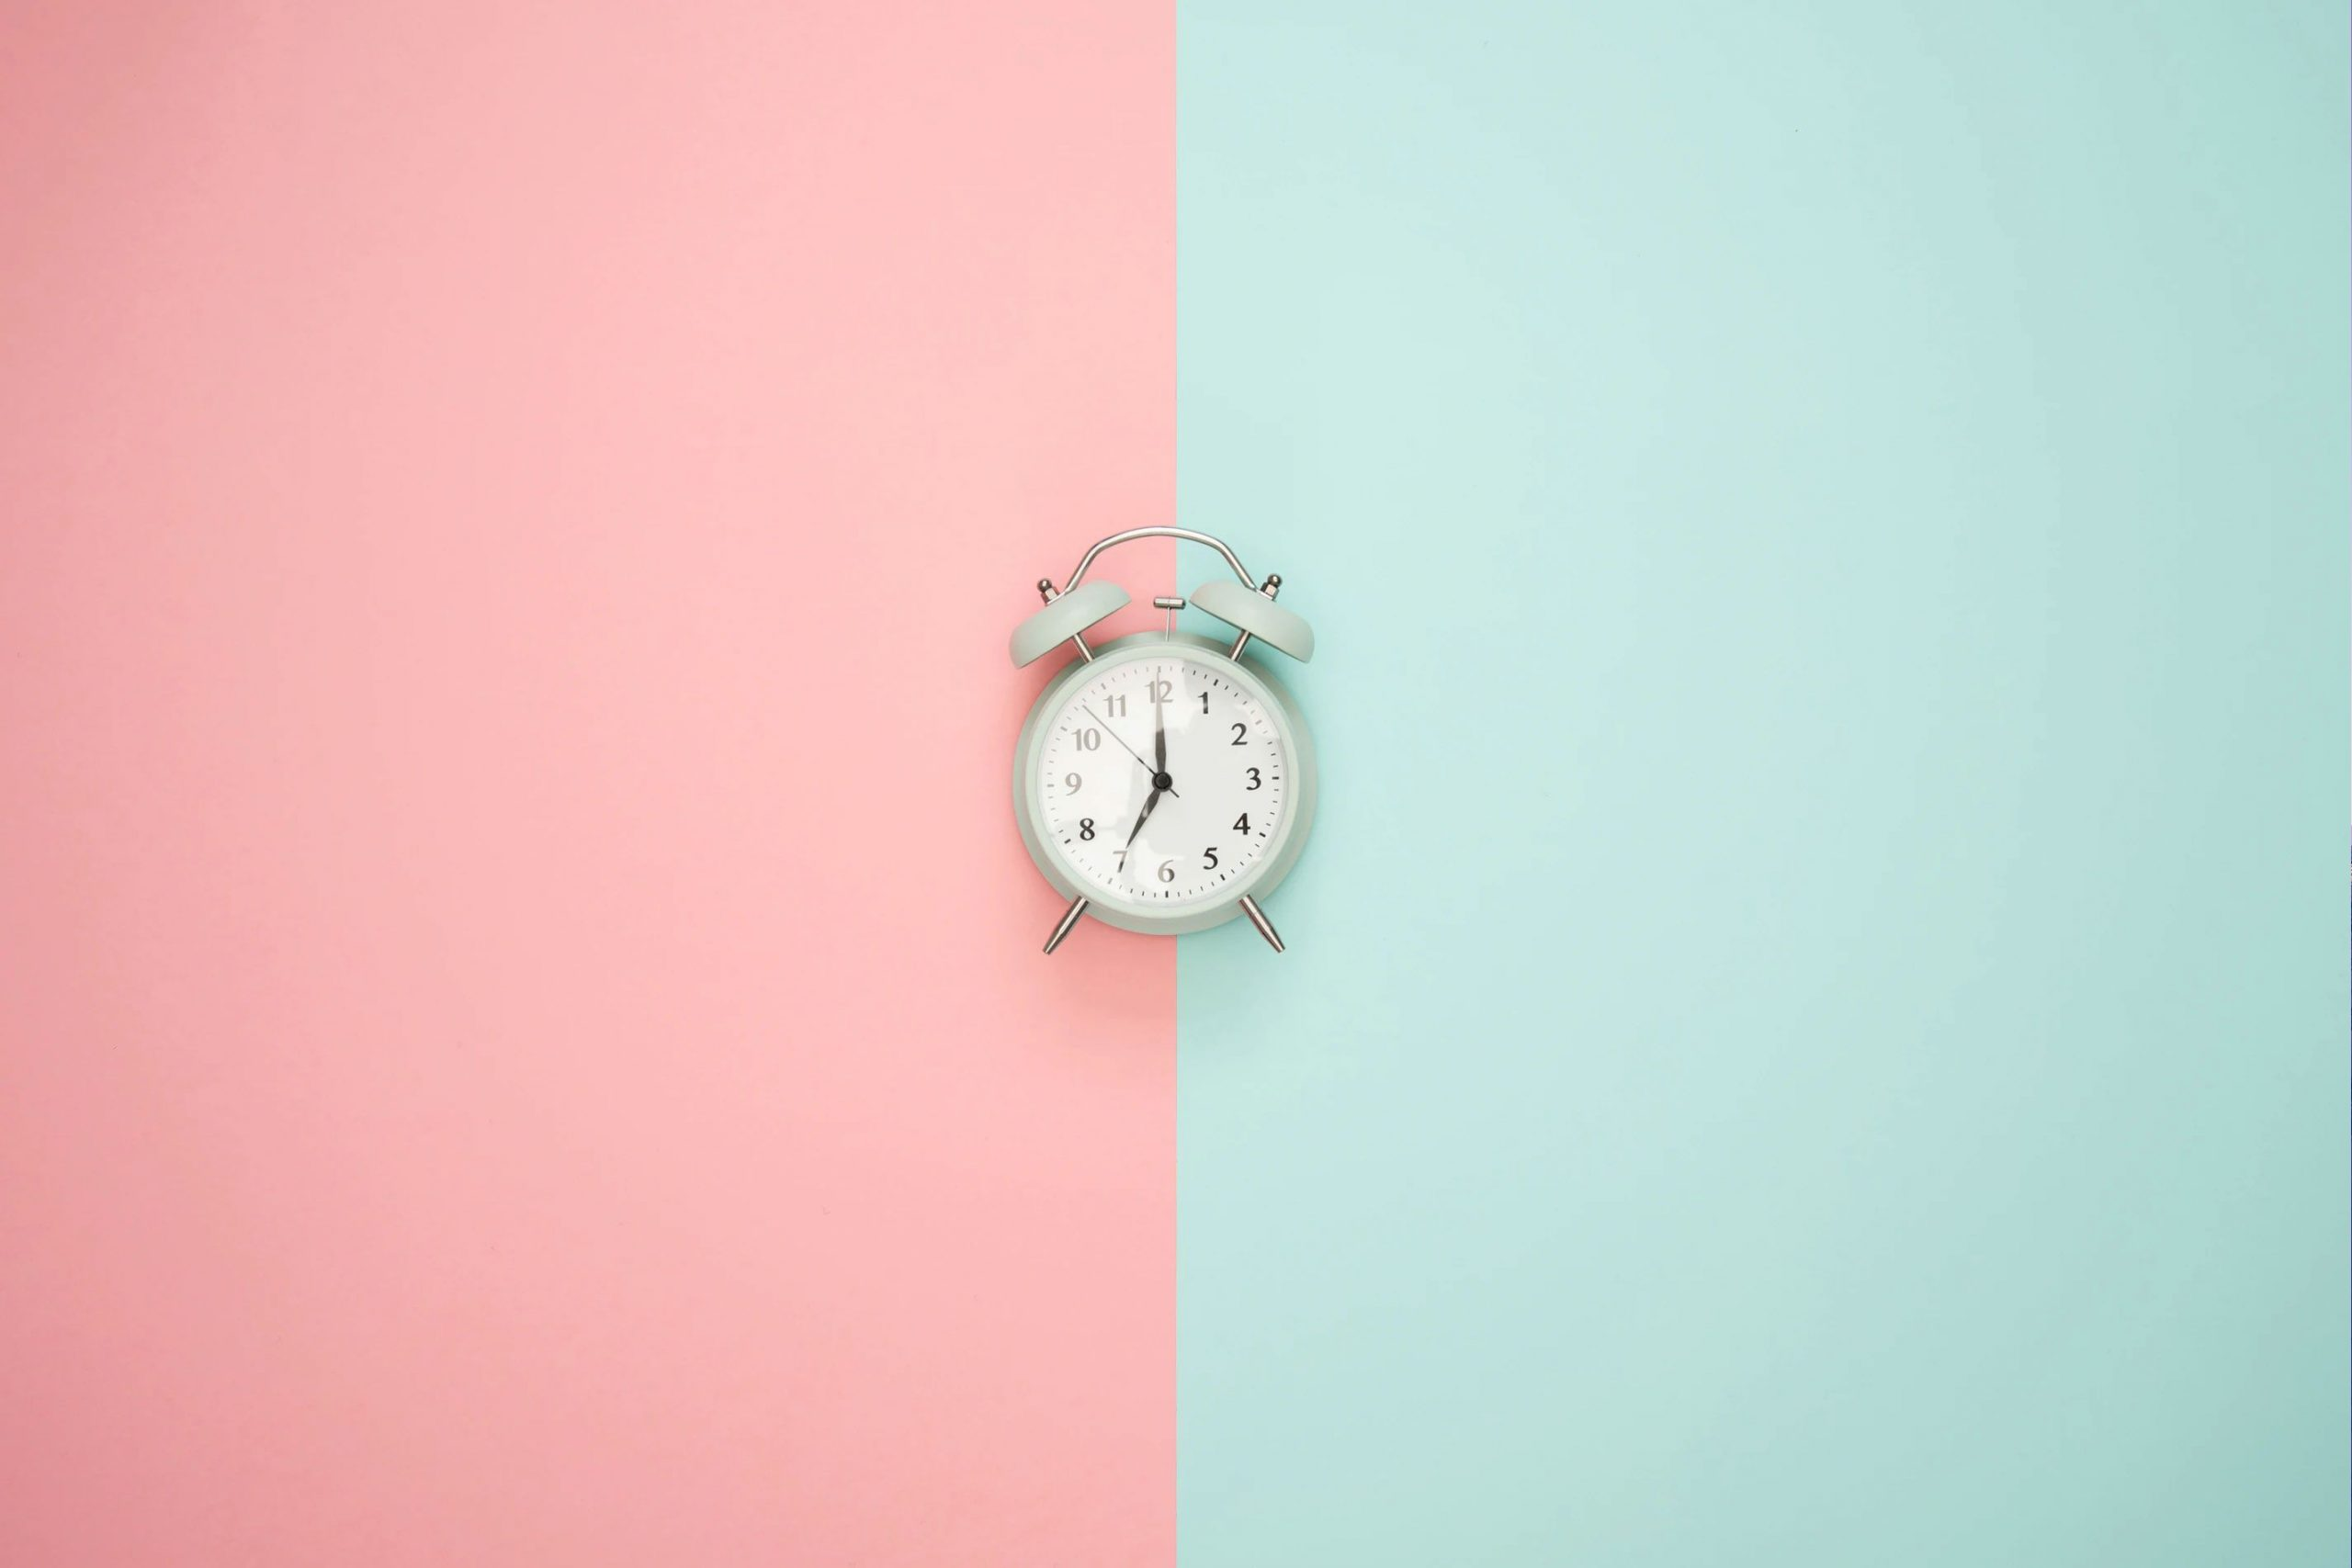 Episode 4: Keep Track Of Time